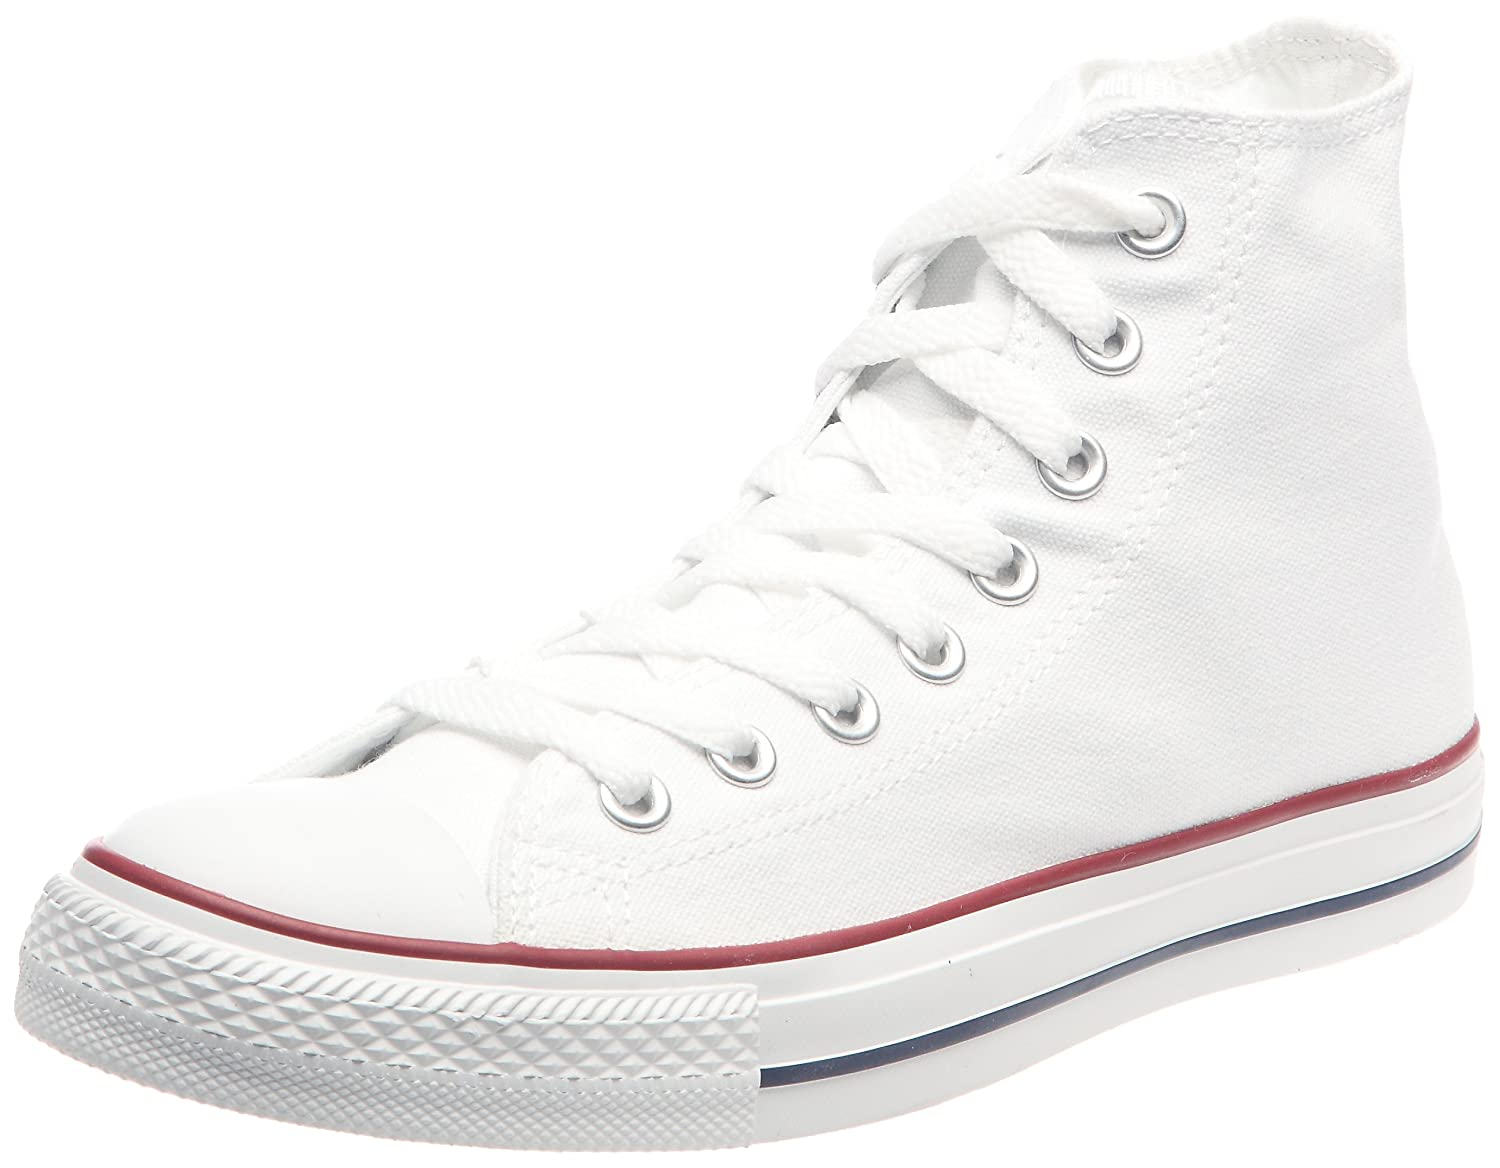 Converse Chuck Taylor Etoiles Low Top Sneakers Mode Sneaker Mode Sneakers 42.5/44 EU|Optical White d1fcc3